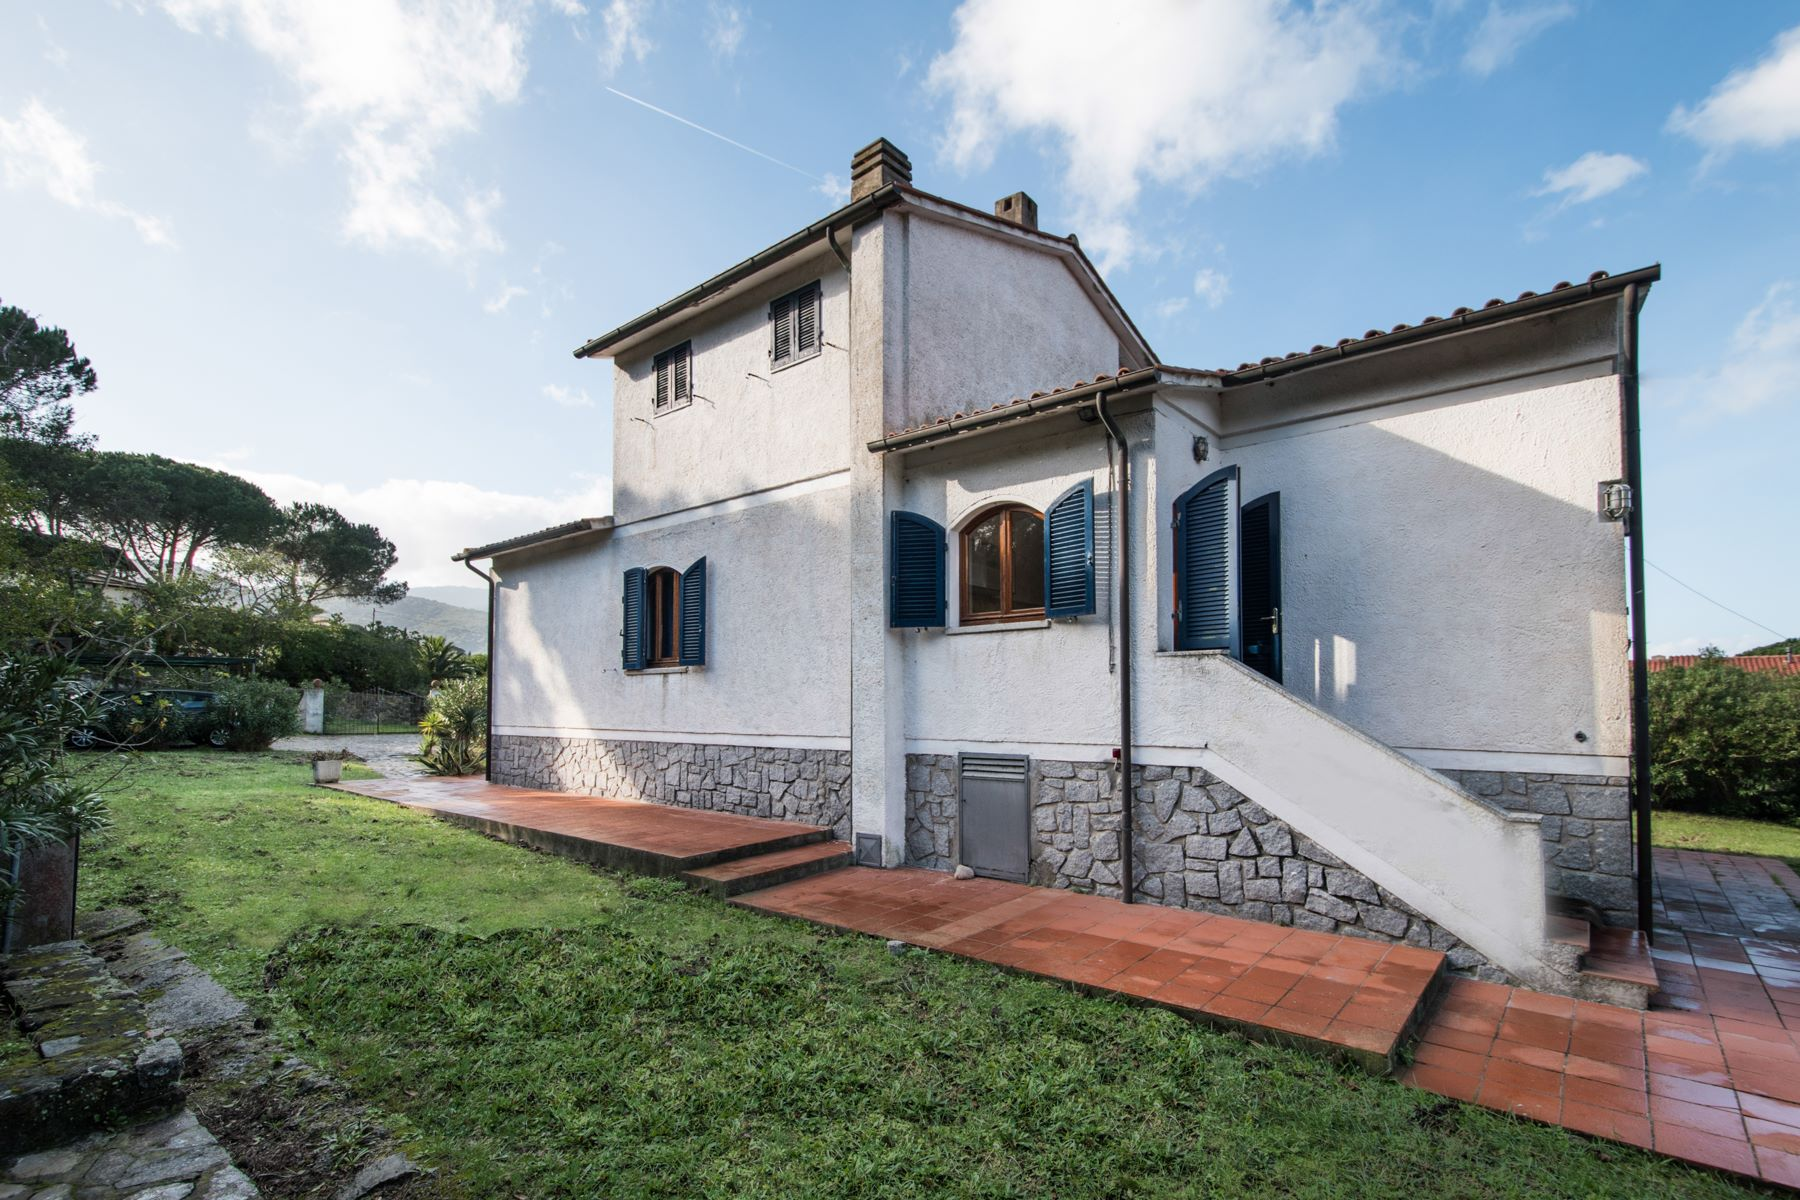 Additional photo for property listing at Detached villa nestled within fenced garden Via di Campo all'Aia Marciana, Livorno 57033 Italien